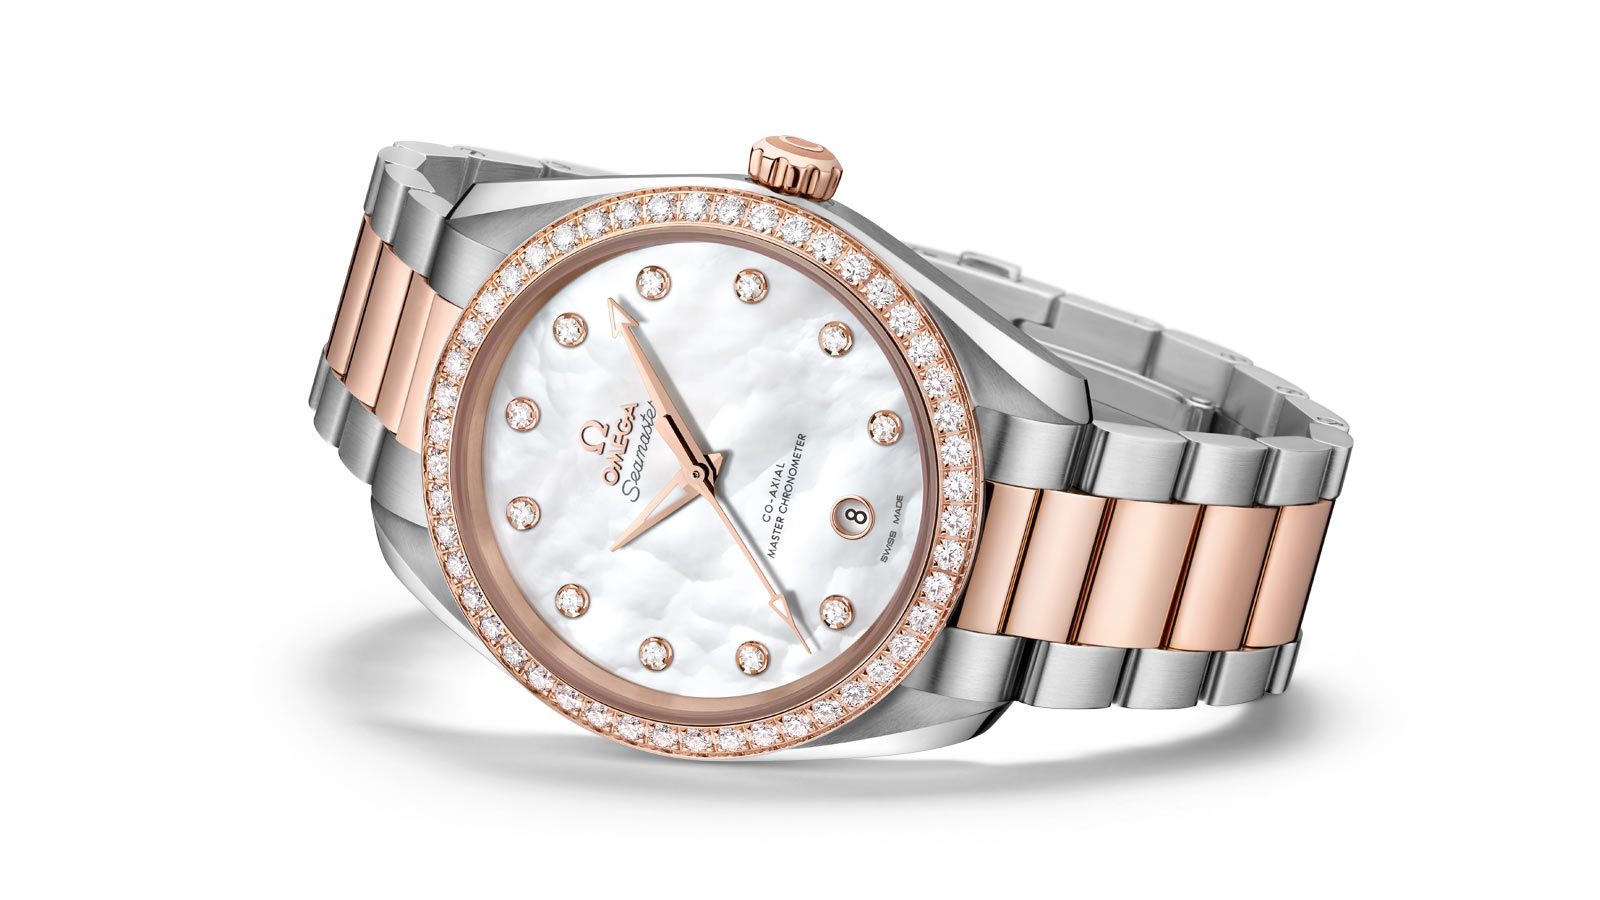 THE SEAMASTER AQUA TERRA MASTER CHRONOMETER LADIES' COLLECTION